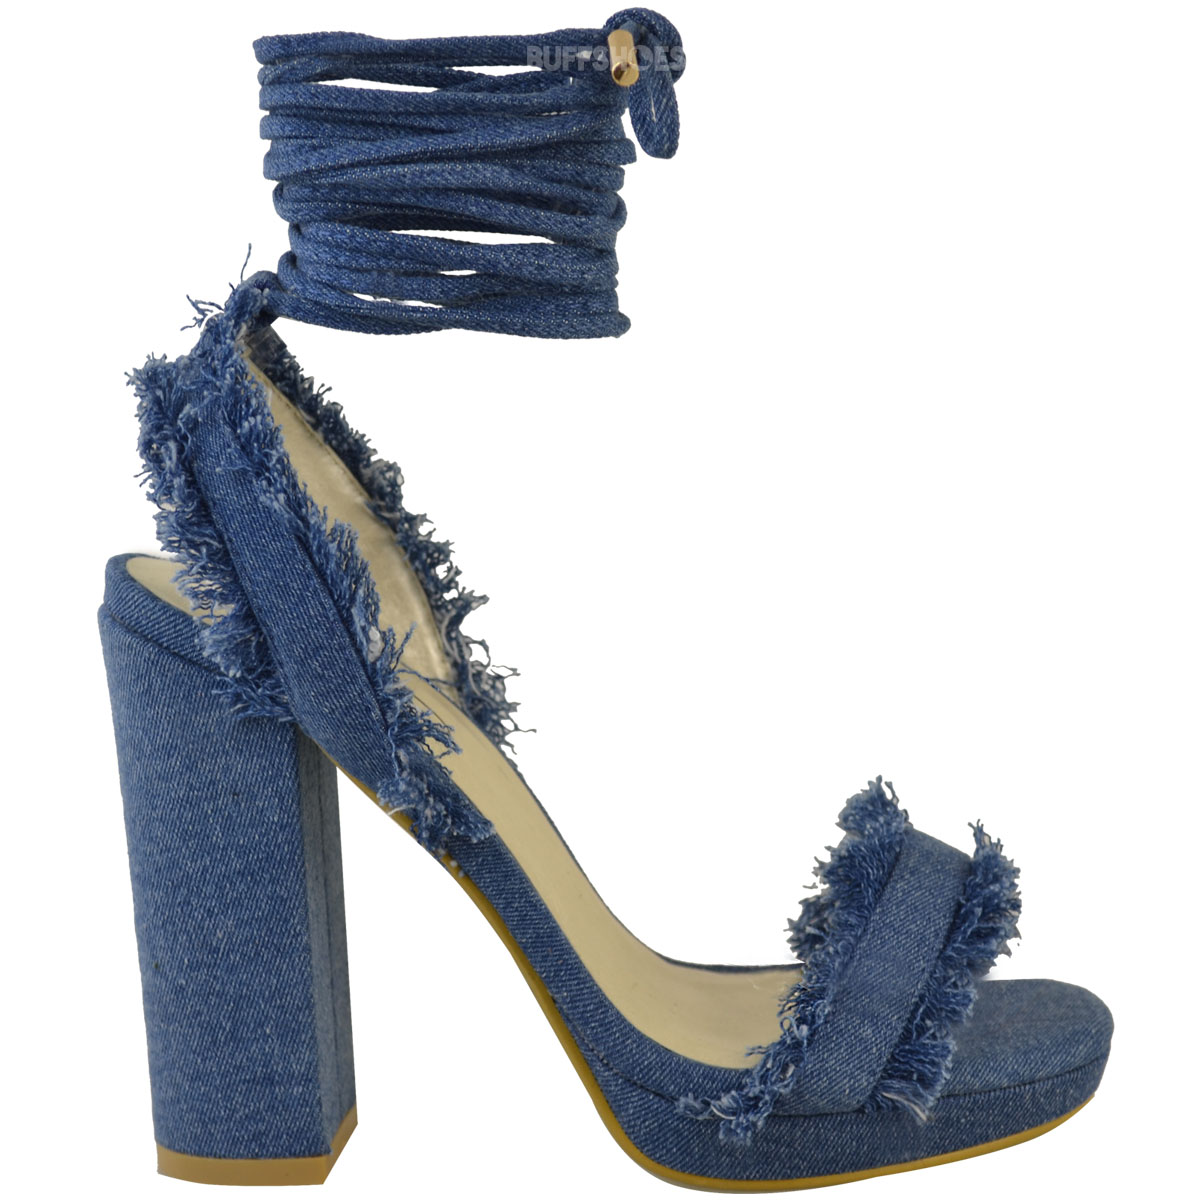 Details about Womens Ladies Denim Block High Heels Sandals Lace Up Strappy Party Shoes Size UK